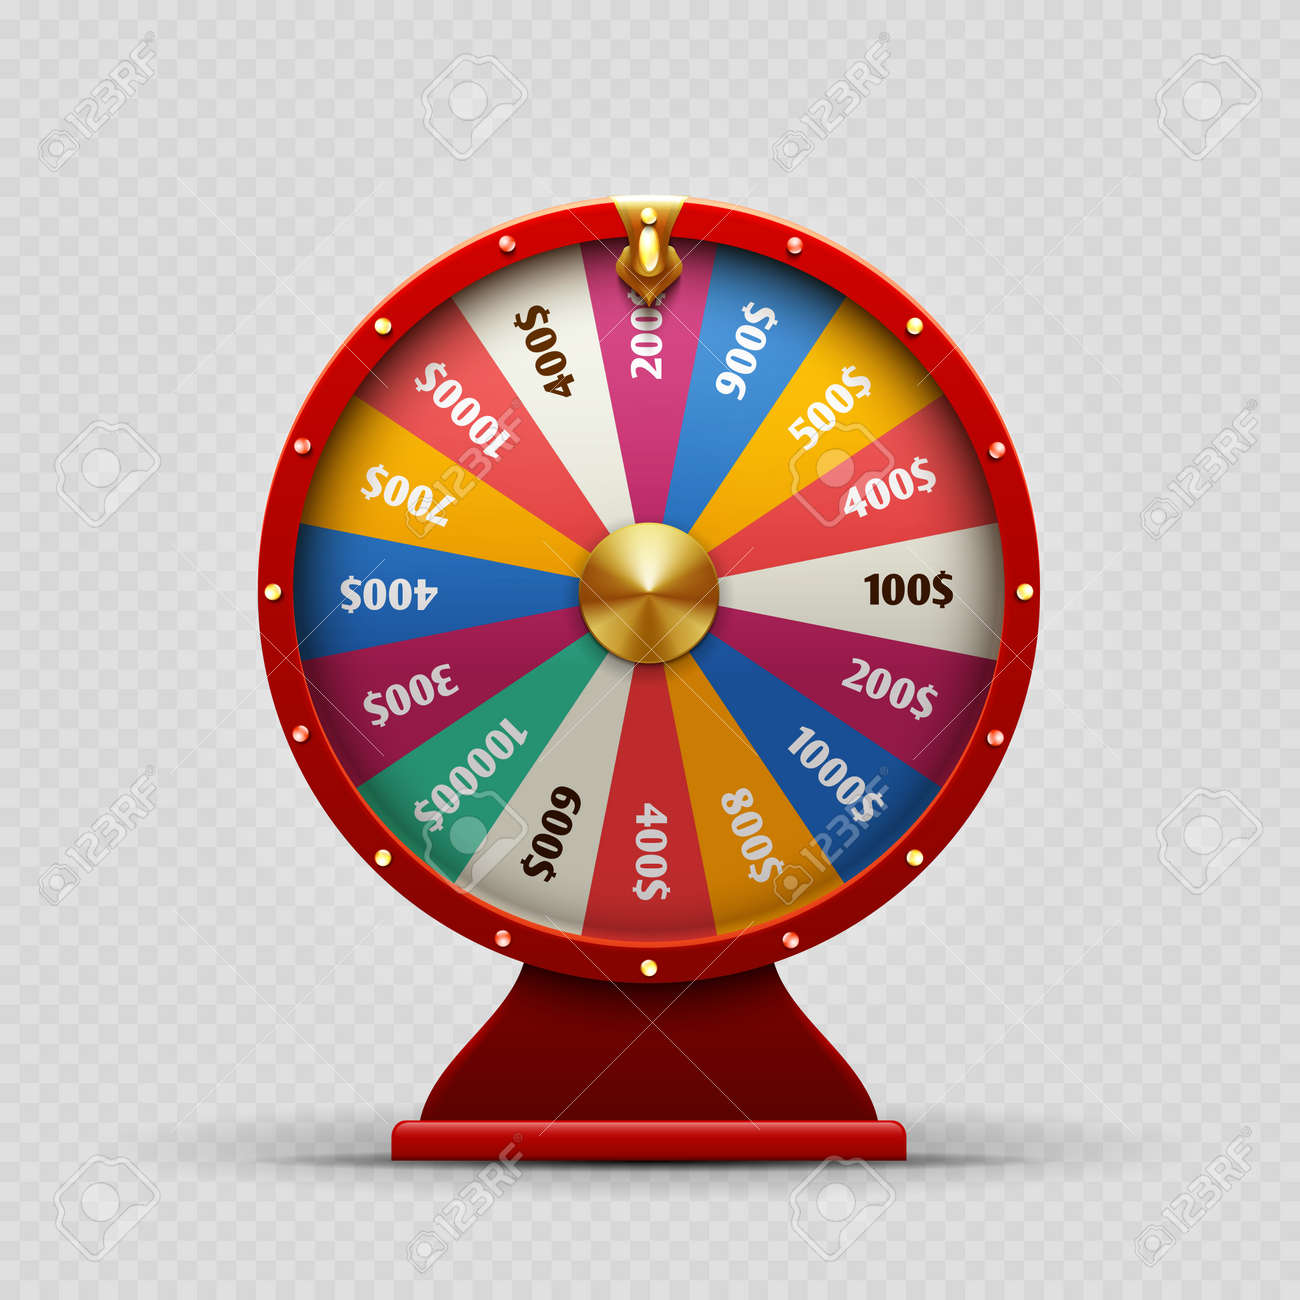 Colorful realistic casino fortune wheel on transparent background. Fortune wheel casino, money and lucky. Vector illustration - 166831258